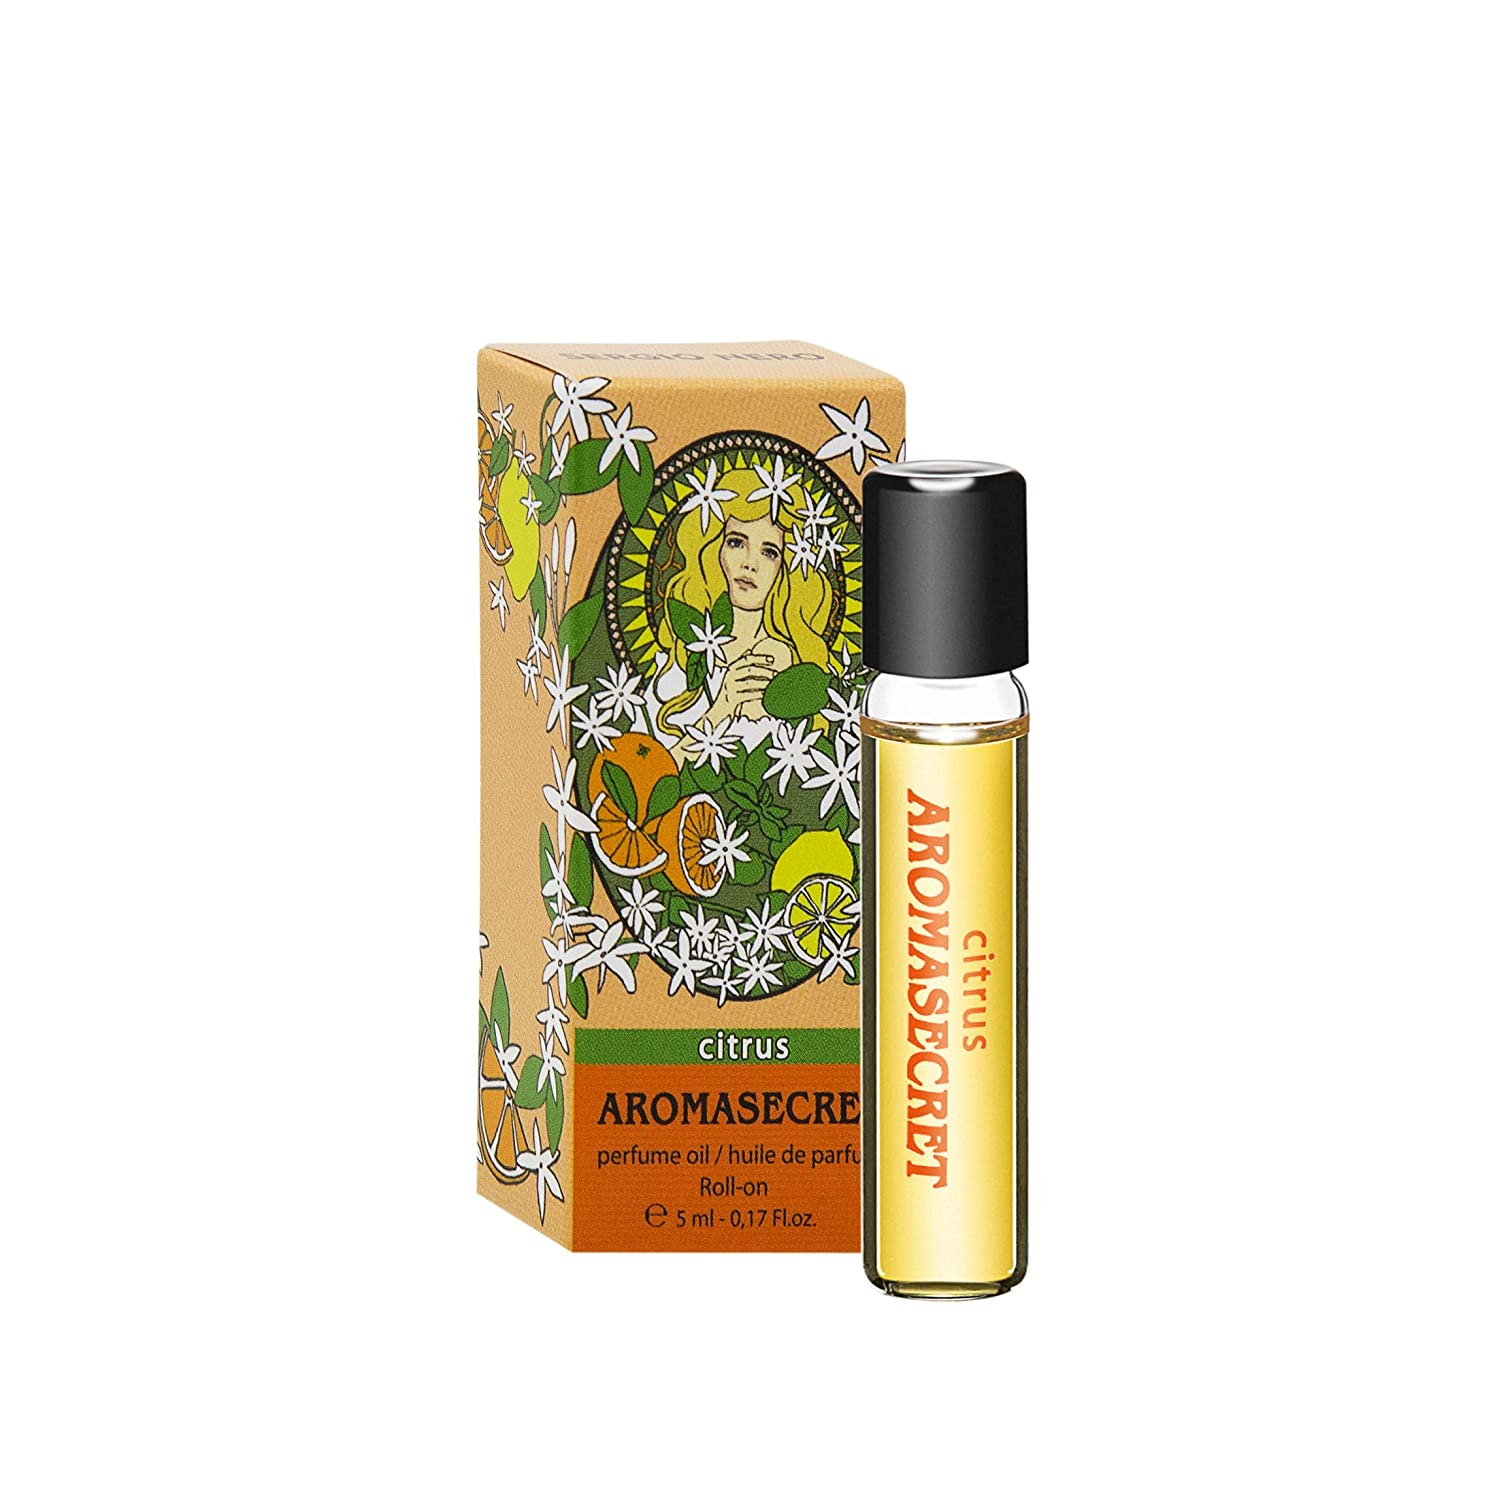 Aromasecret Citrus Perfume Oil for Women - 5 ml Miniature Rollerball - NEW Perfume Conception PARFUMS RENE DE GRACE